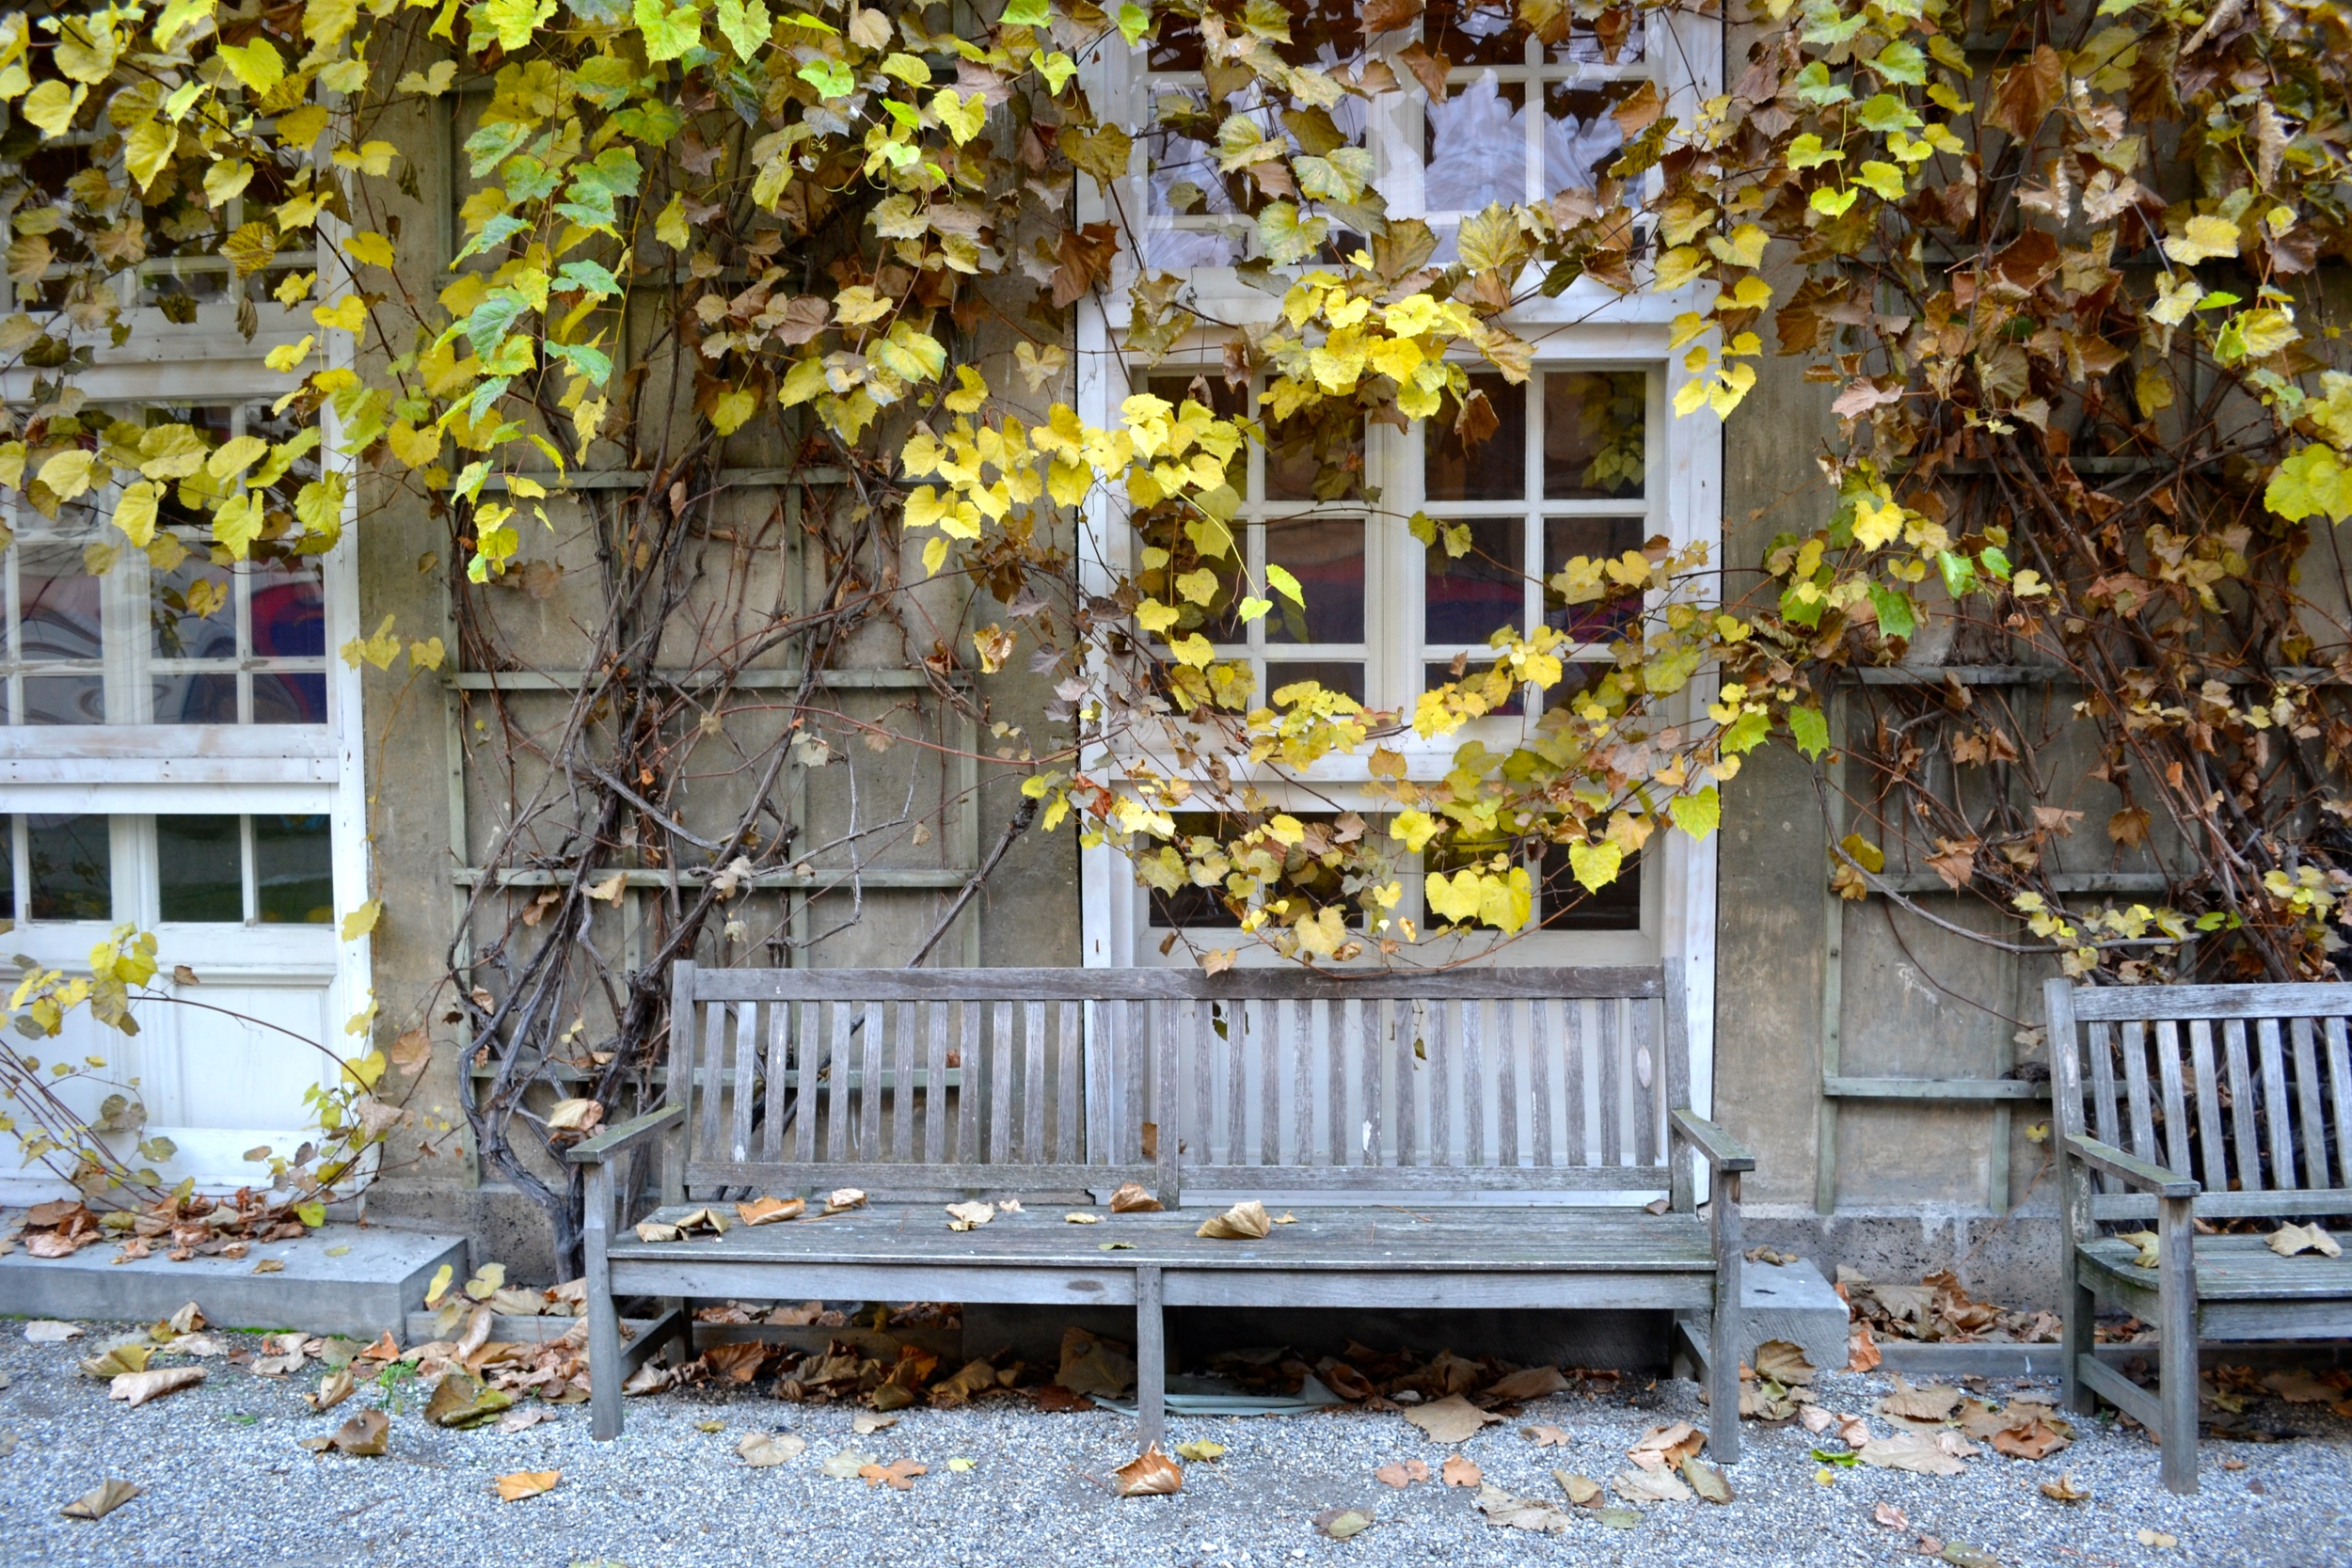 wooden-bench-autumn-leaves